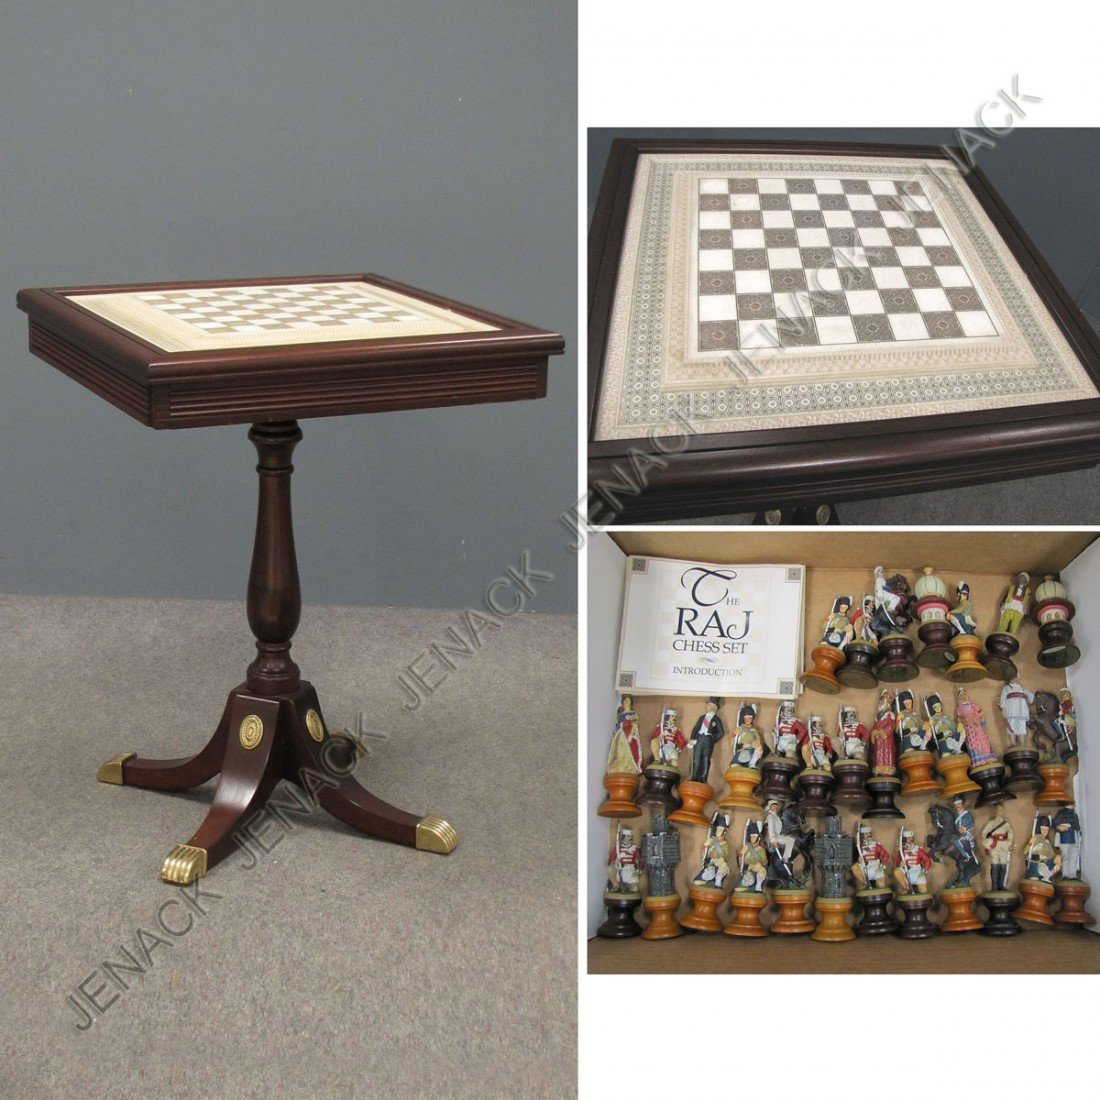 FRANKLIN MINT RAJ CHESS SET